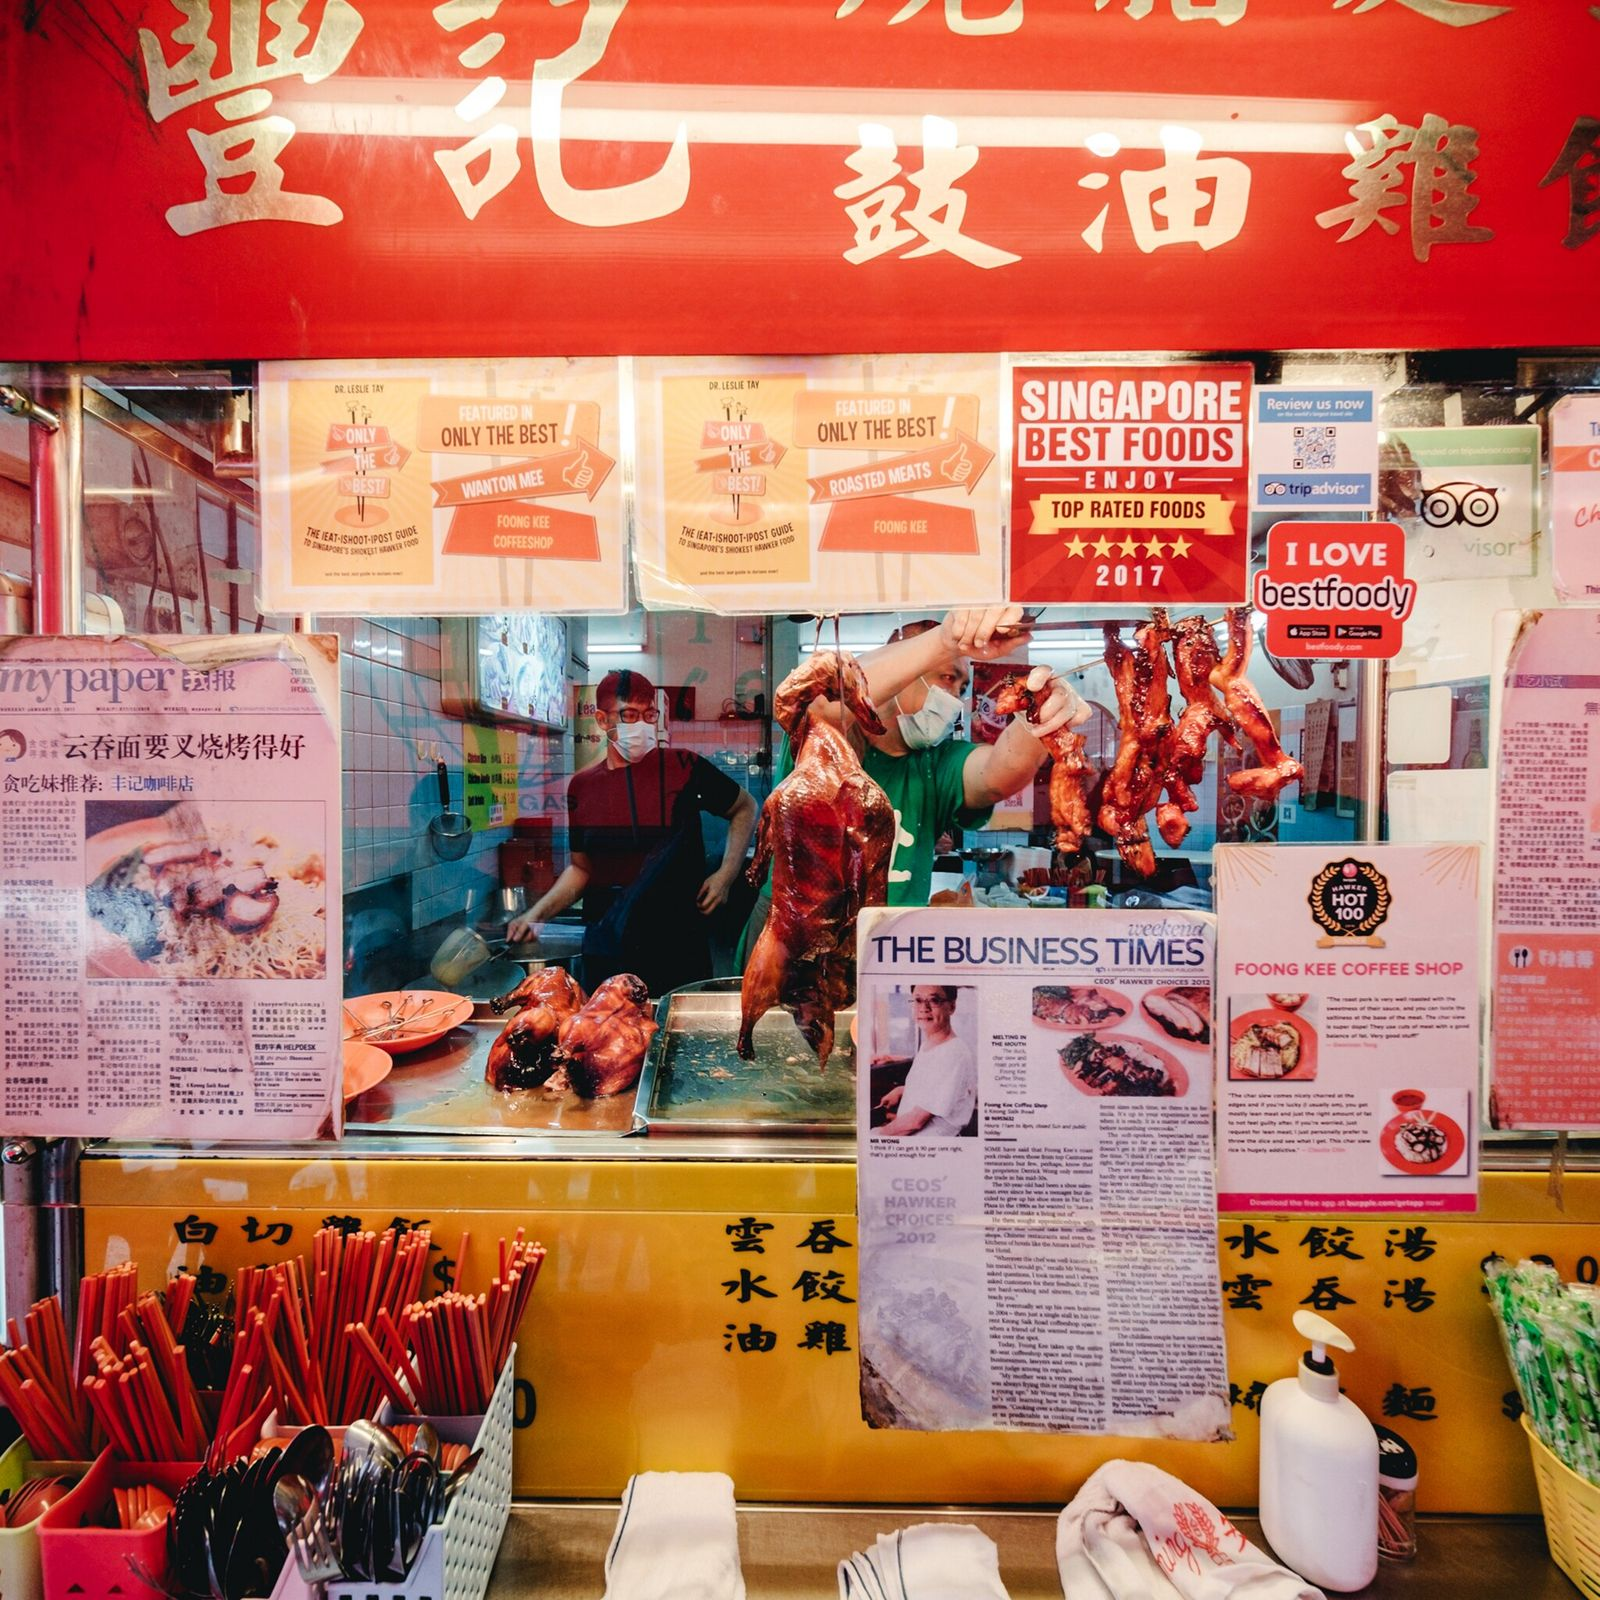 On Keong Siak Road in Singapore's Chinatown neighborhood, the Foong Kee hawker stand sells charcoal roasted ...